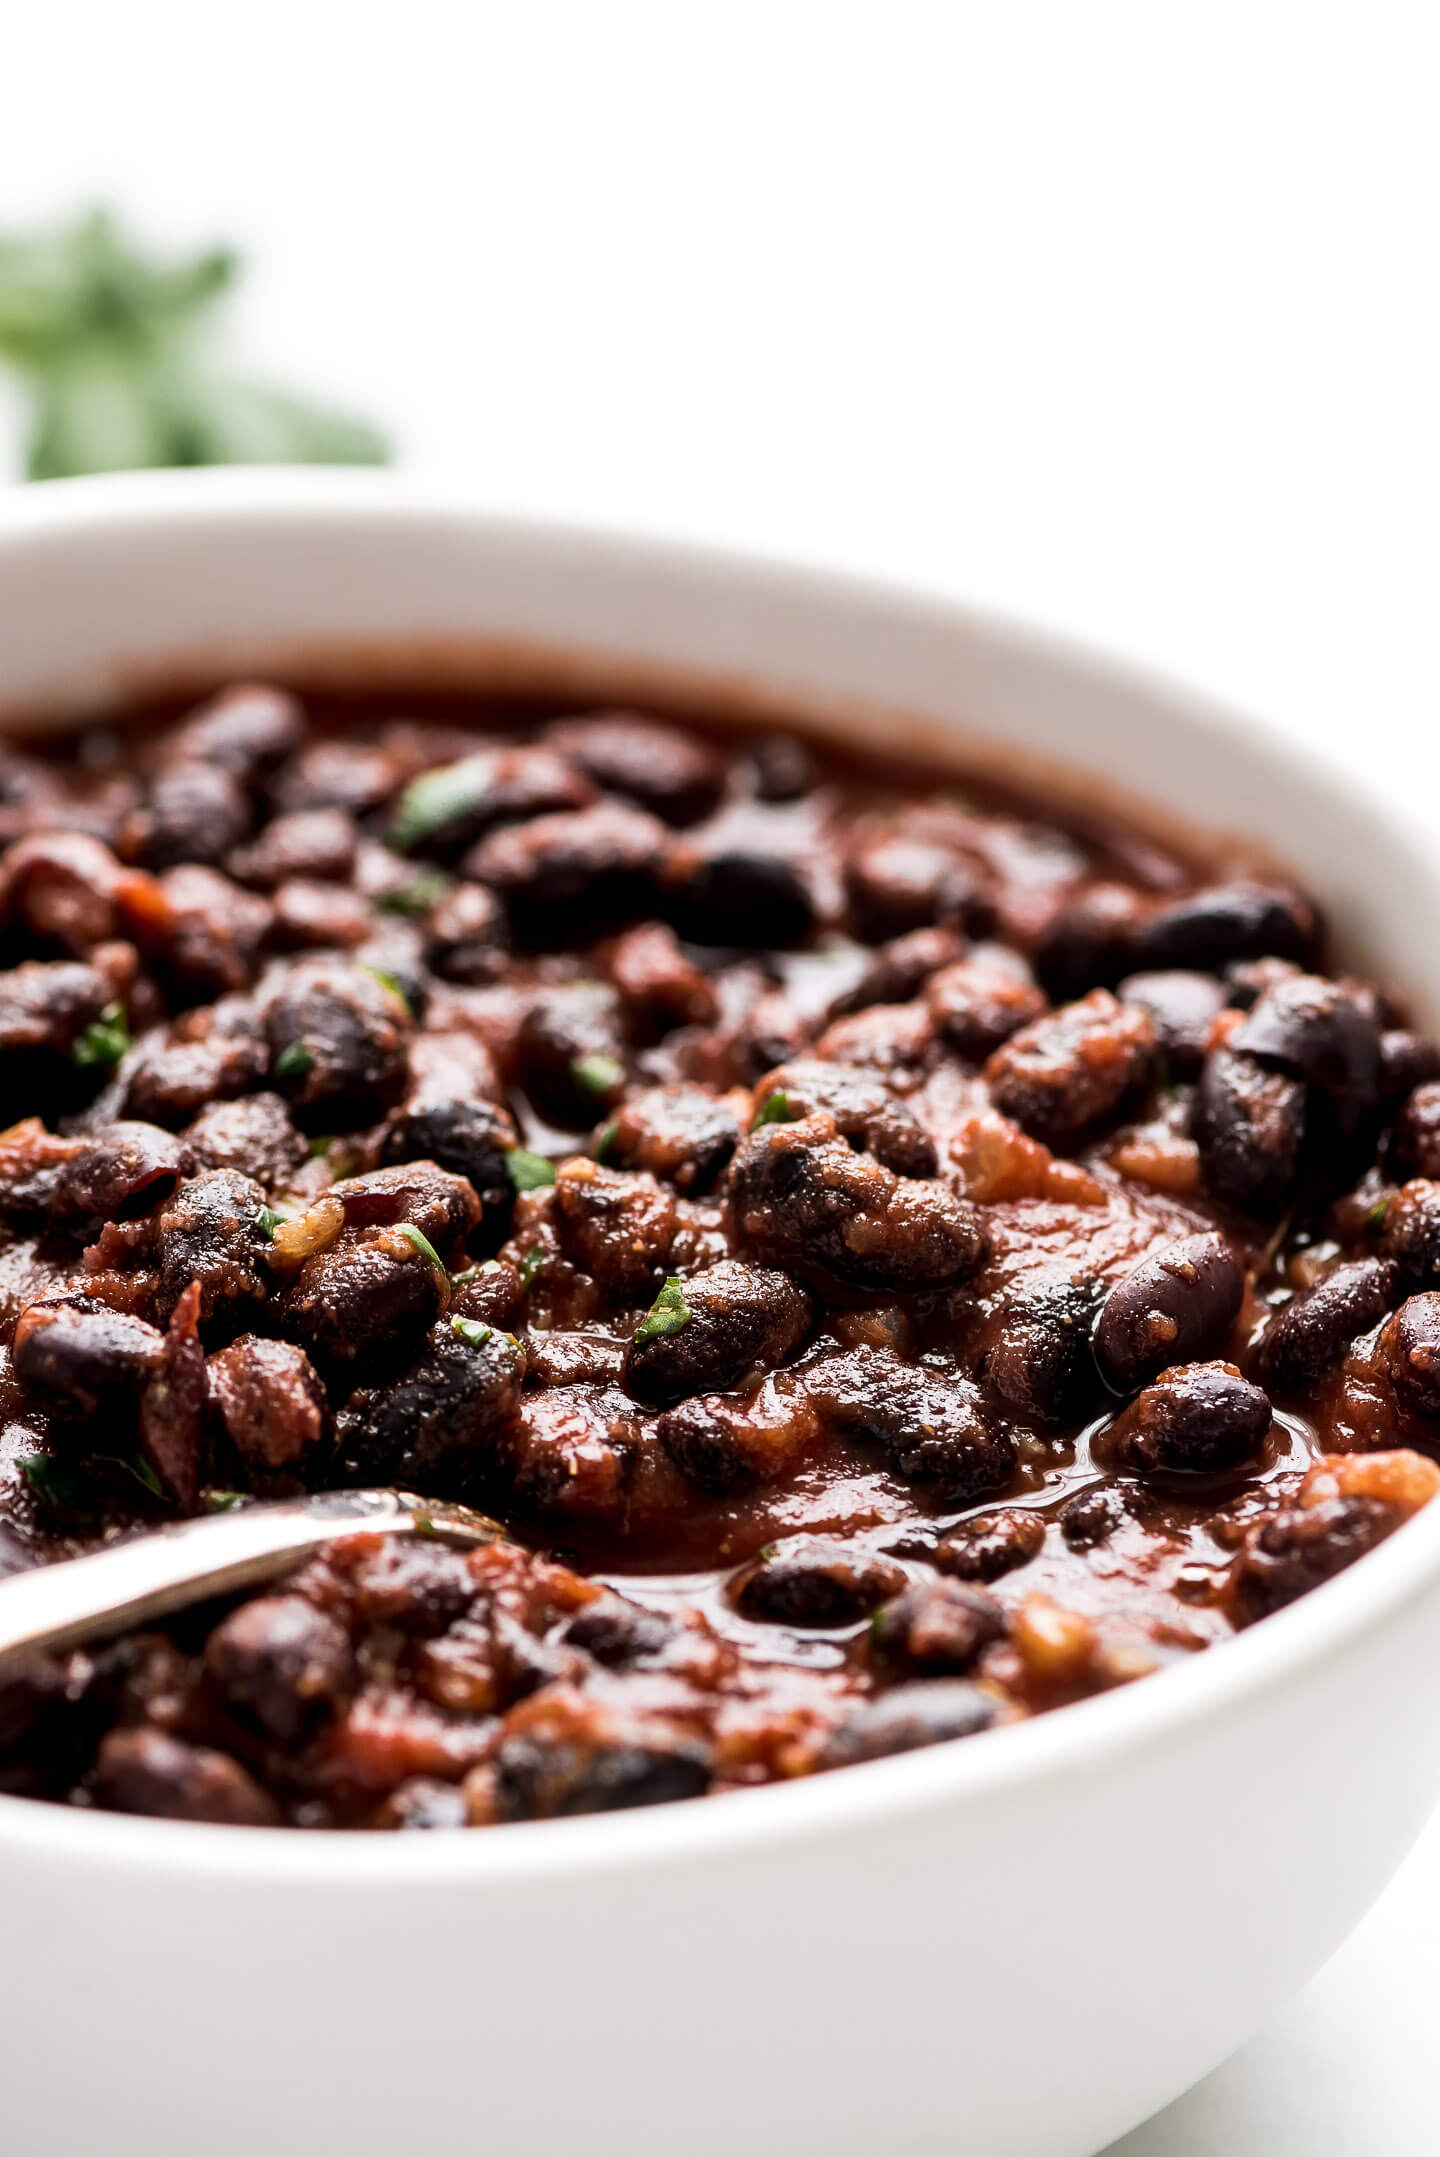 A close-up photo of seasoned black beans in a white bowl.